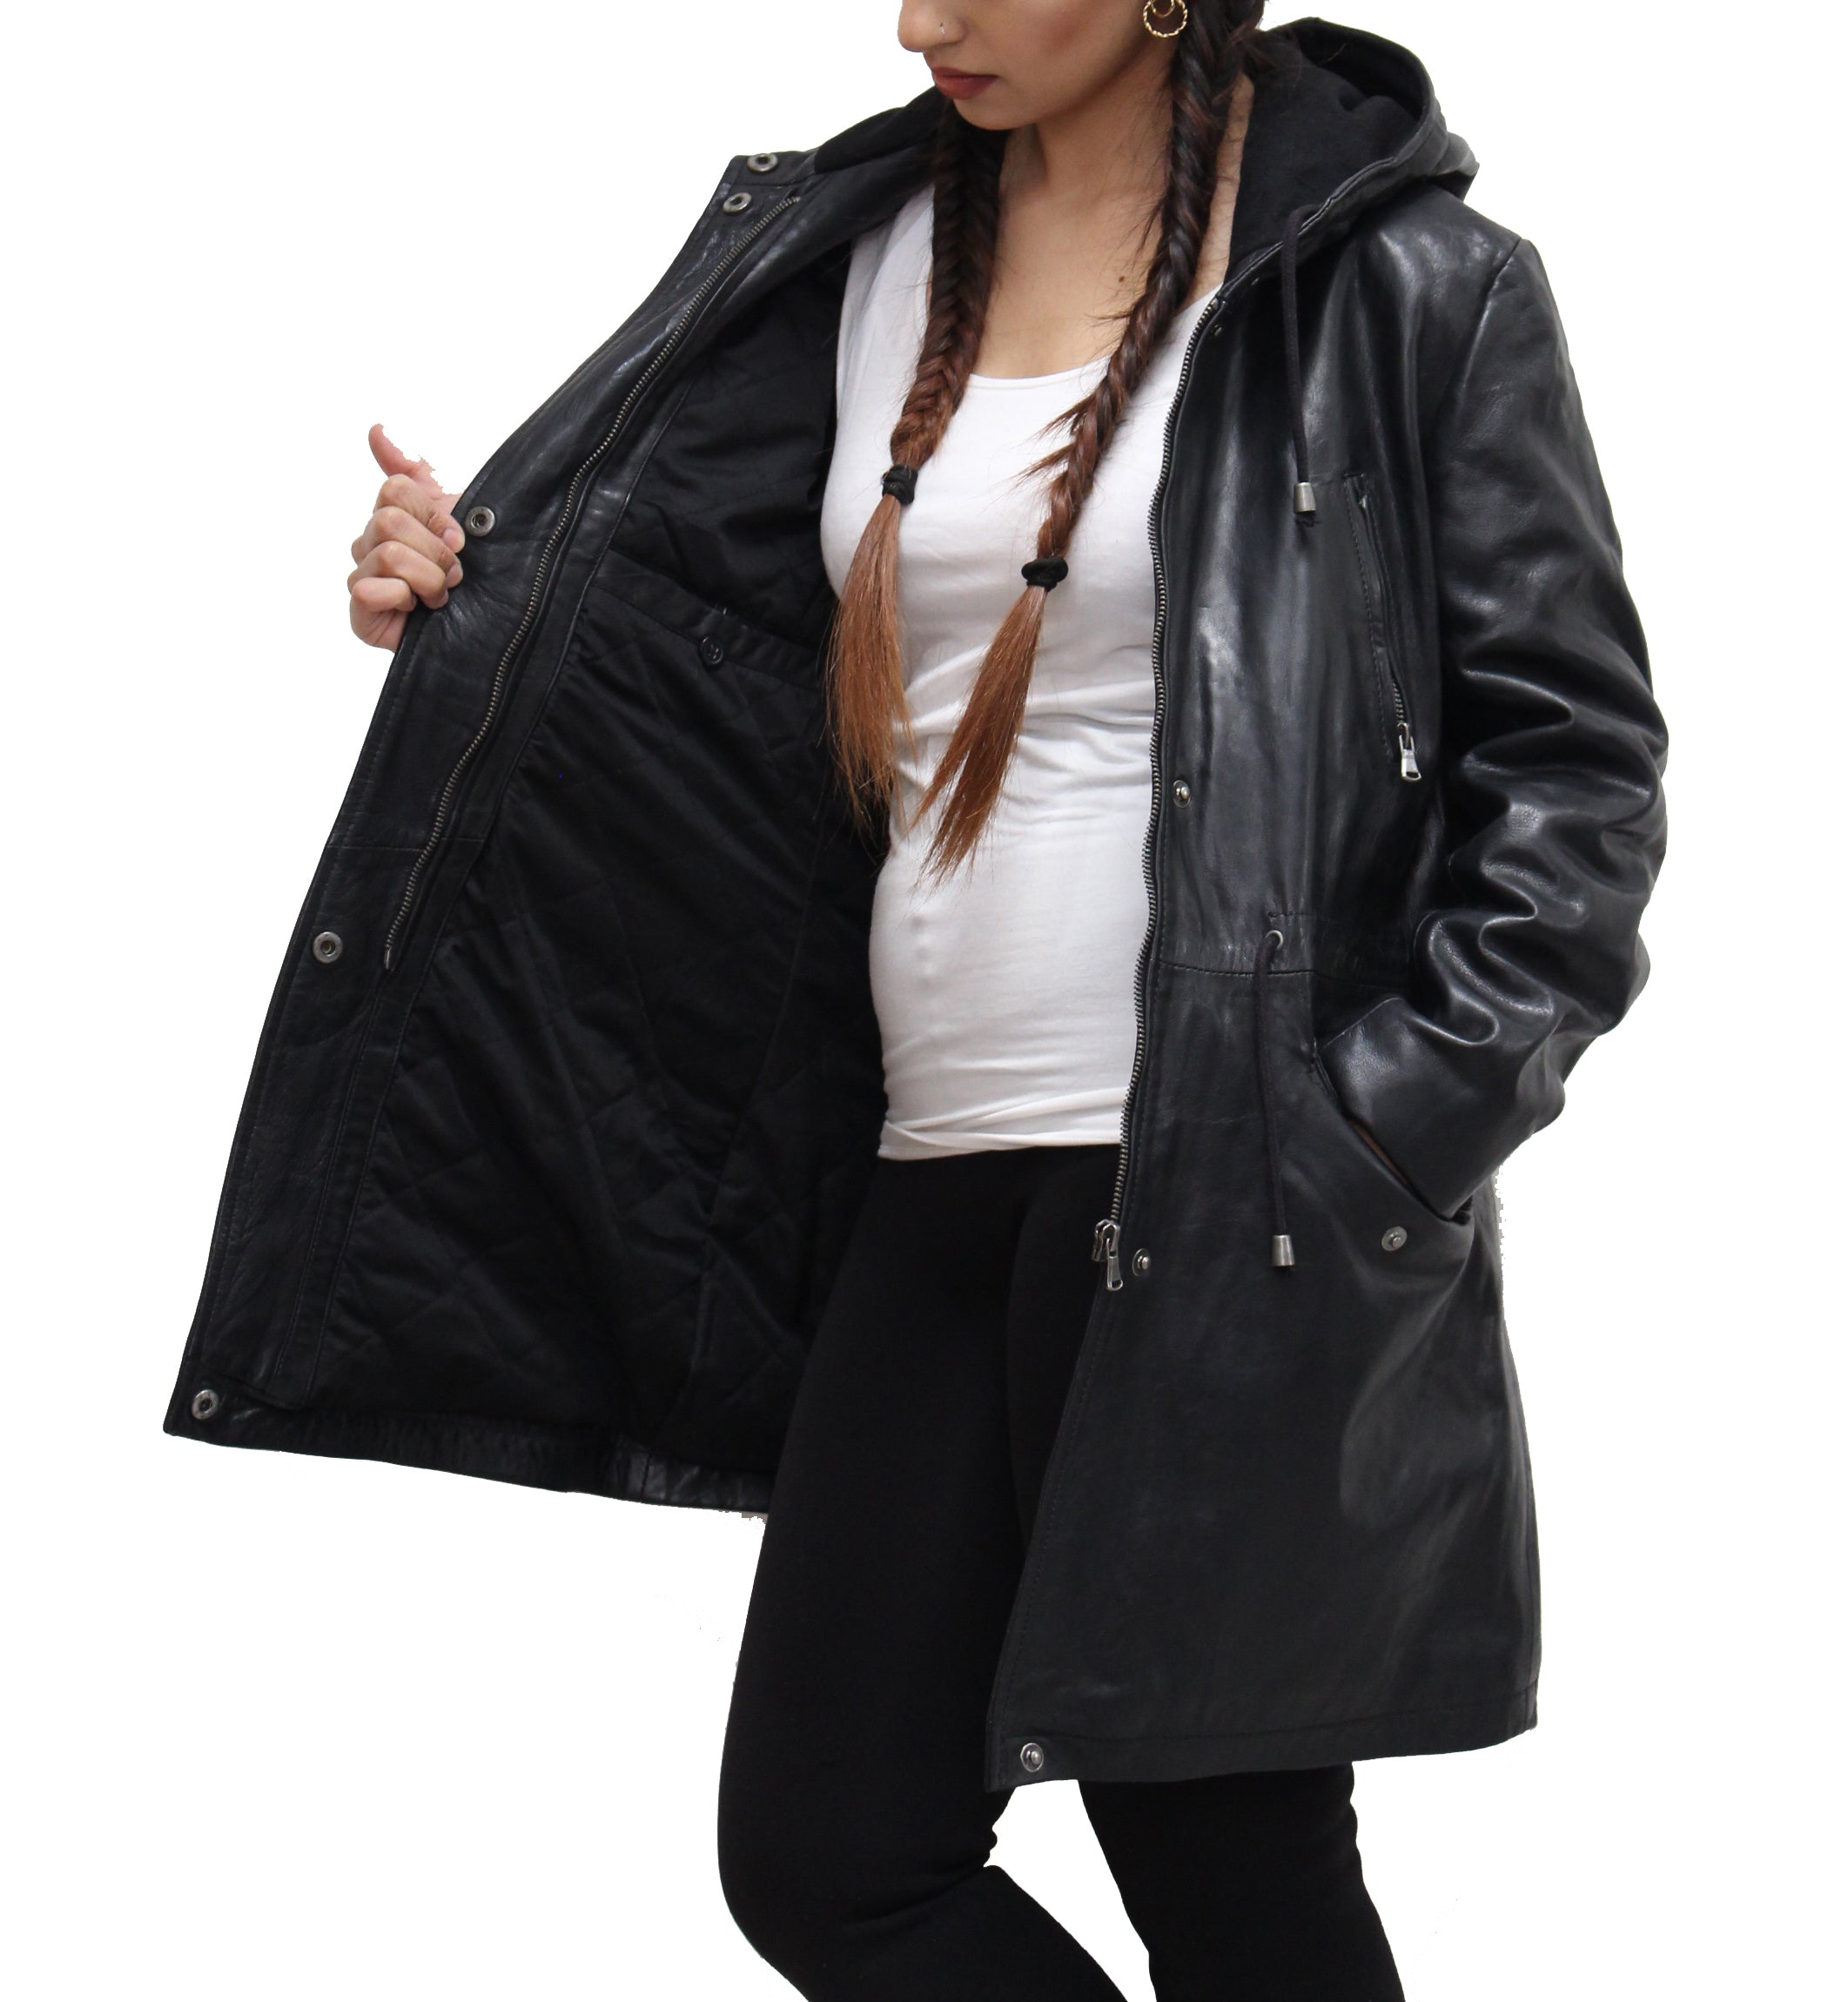 Womens Real Leather Stylish Black Hooded Parka Trench Coat